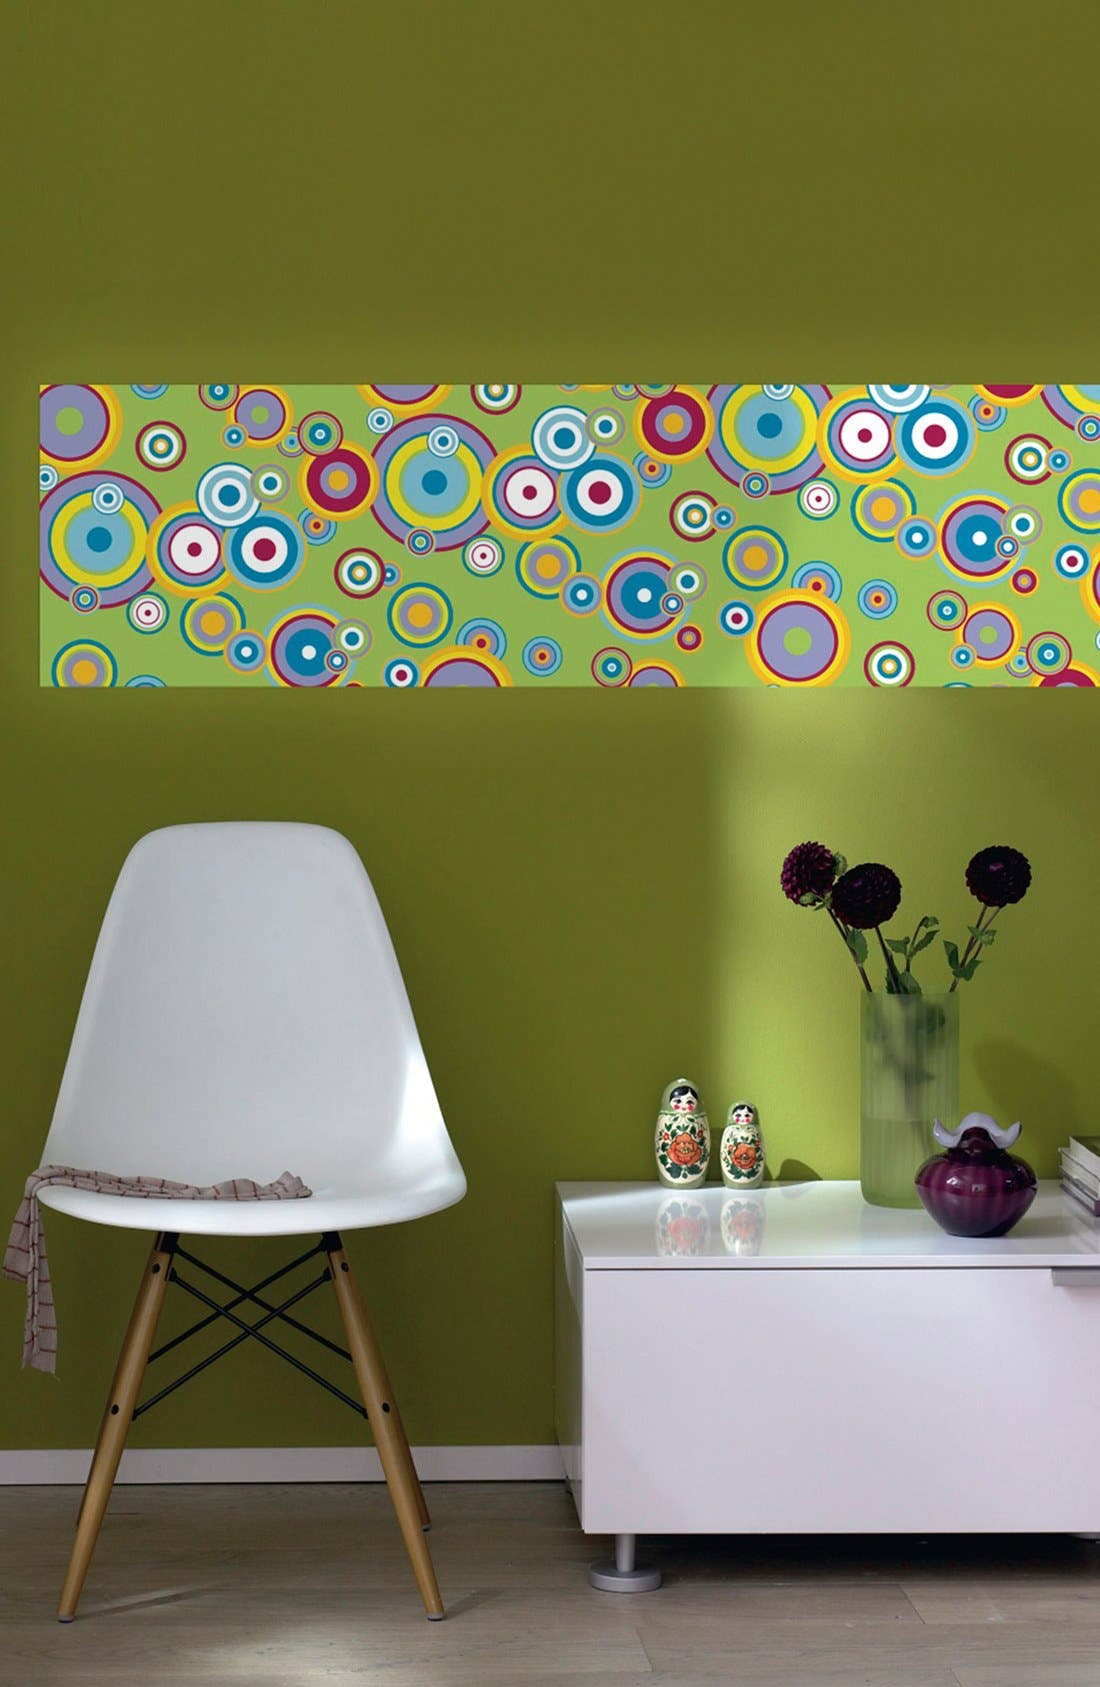 Alternate Image 1 Selected - Wallpops 'Flying Bubbles Mint' Wall Art